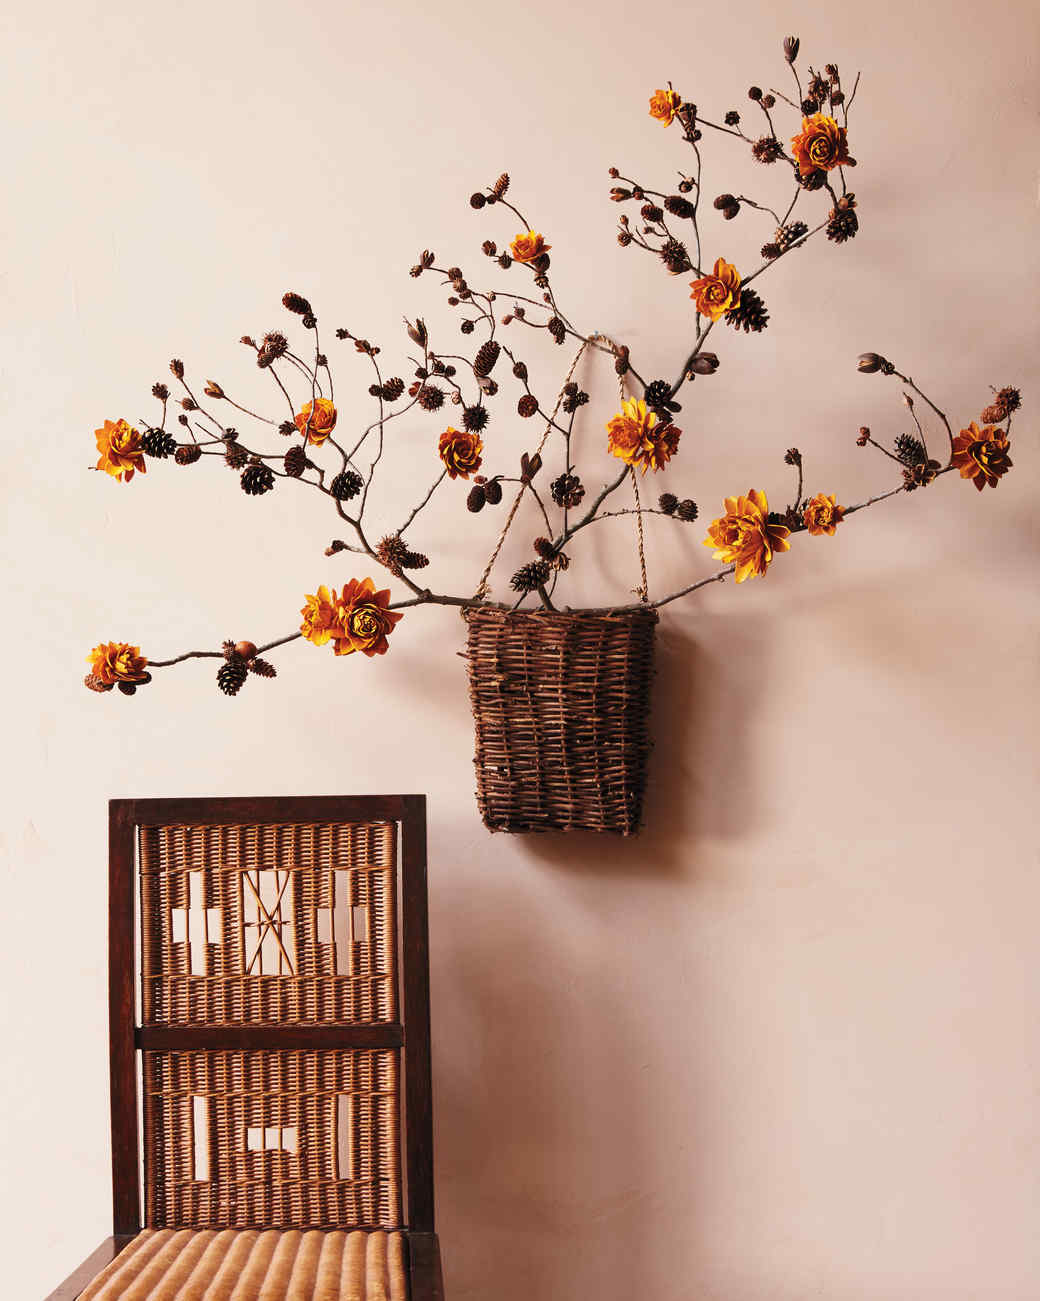 Faux flowers a fall wall decor craft martha stewart faux flowers a fall wall decor craft amipublicfo Choice Image